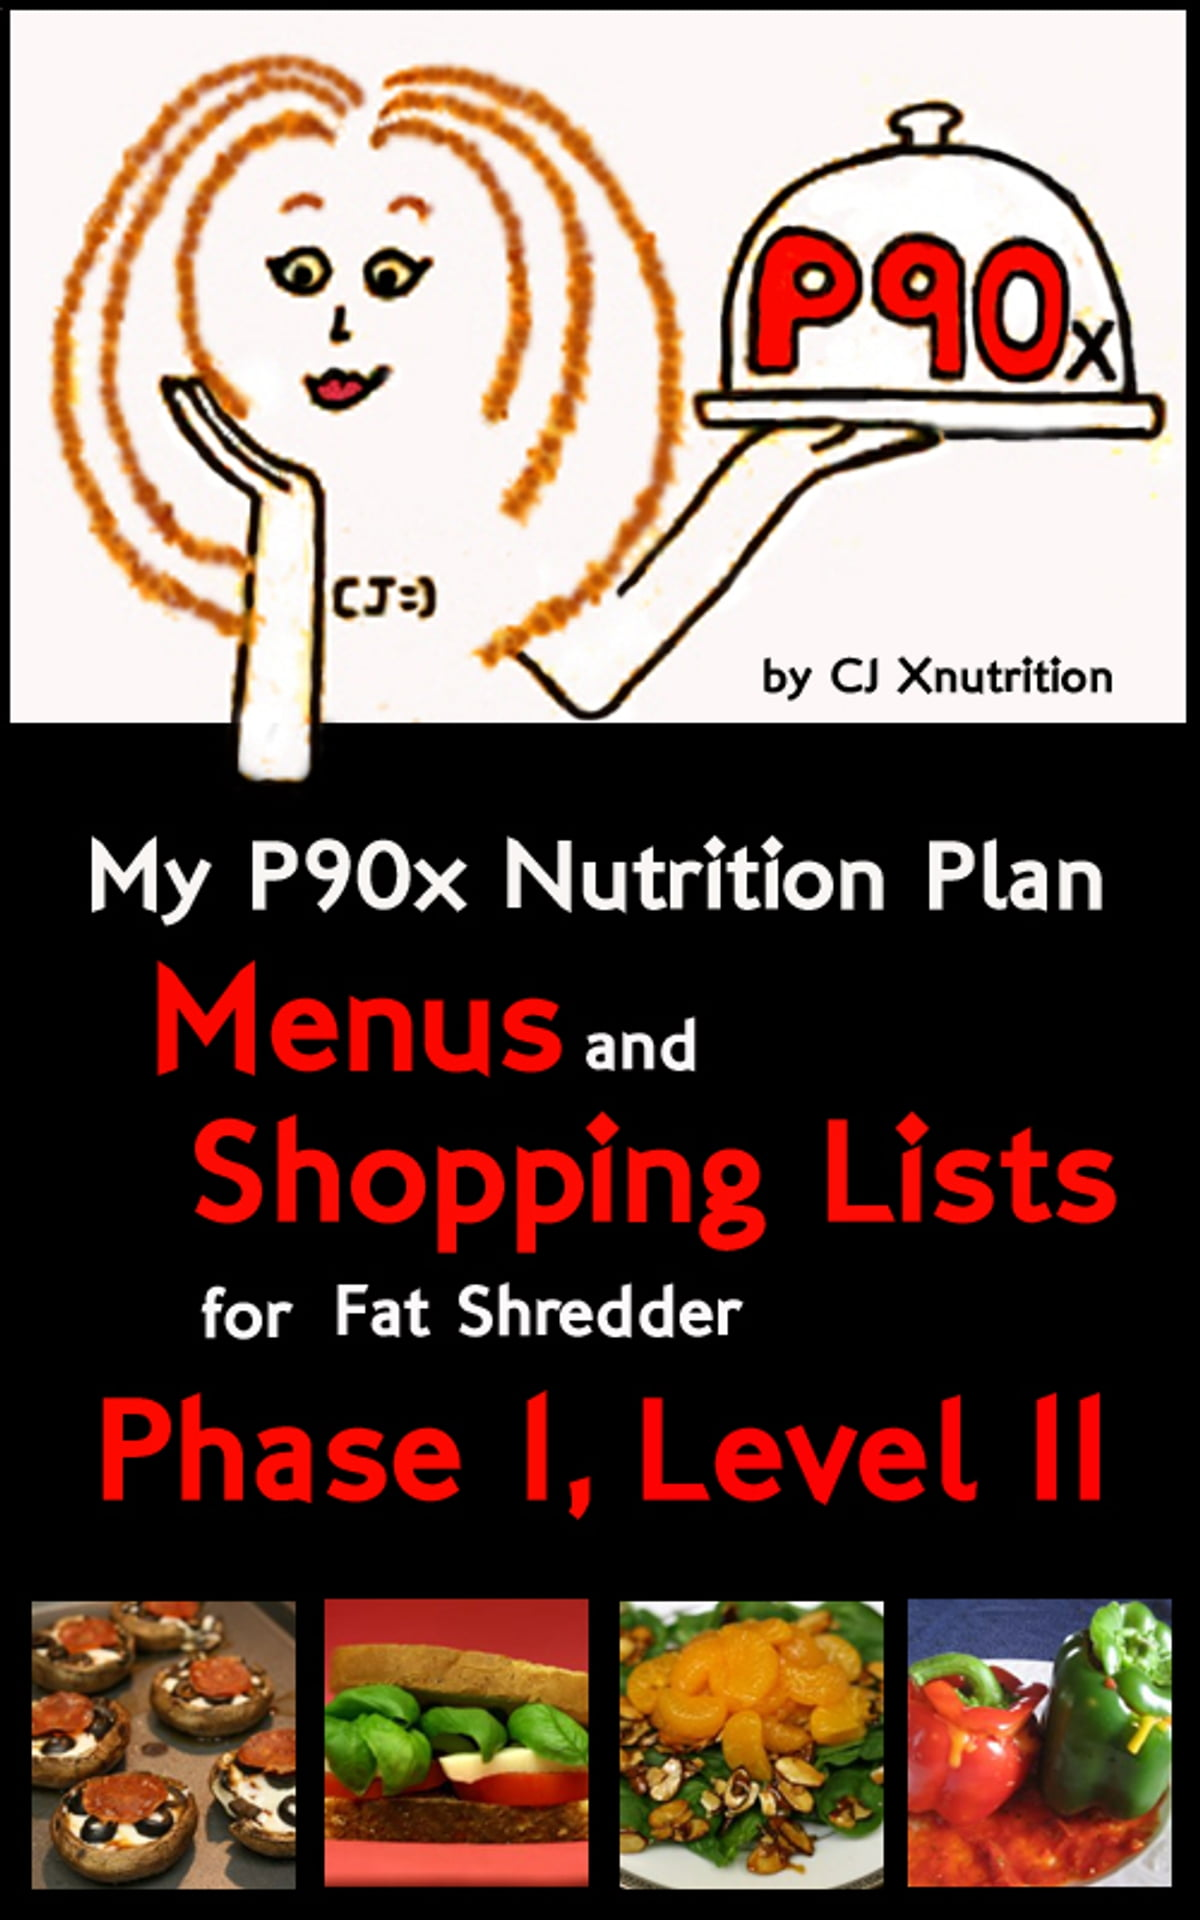 My P90x Nutrition Plan: Menus and Shopping Lists for Fat Shredder, Phase 1,  Level II ebook by CJ Xnutrition - Rakuten Kobo